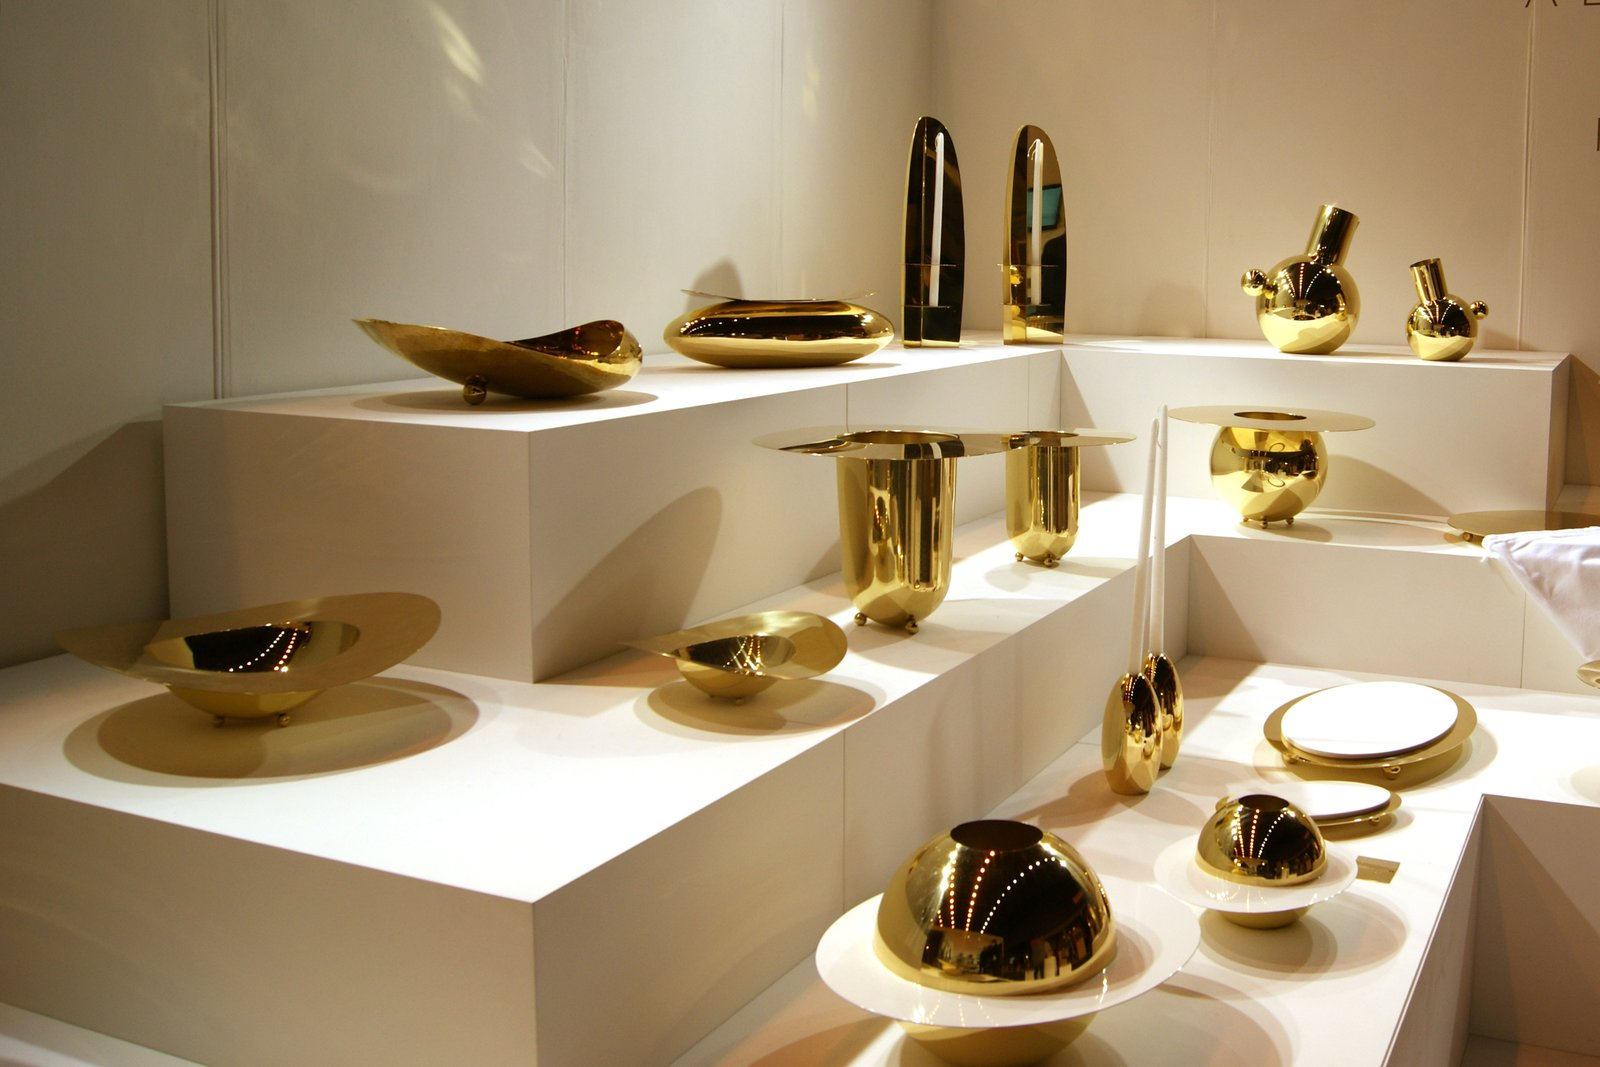 Over at 100% Design, architect Alex Meitlis launched a new sculptural collection of polished brass accessories for silversmiths, Hazorfim.  Key Trends from 2013 London Design Festival by Ali Morris